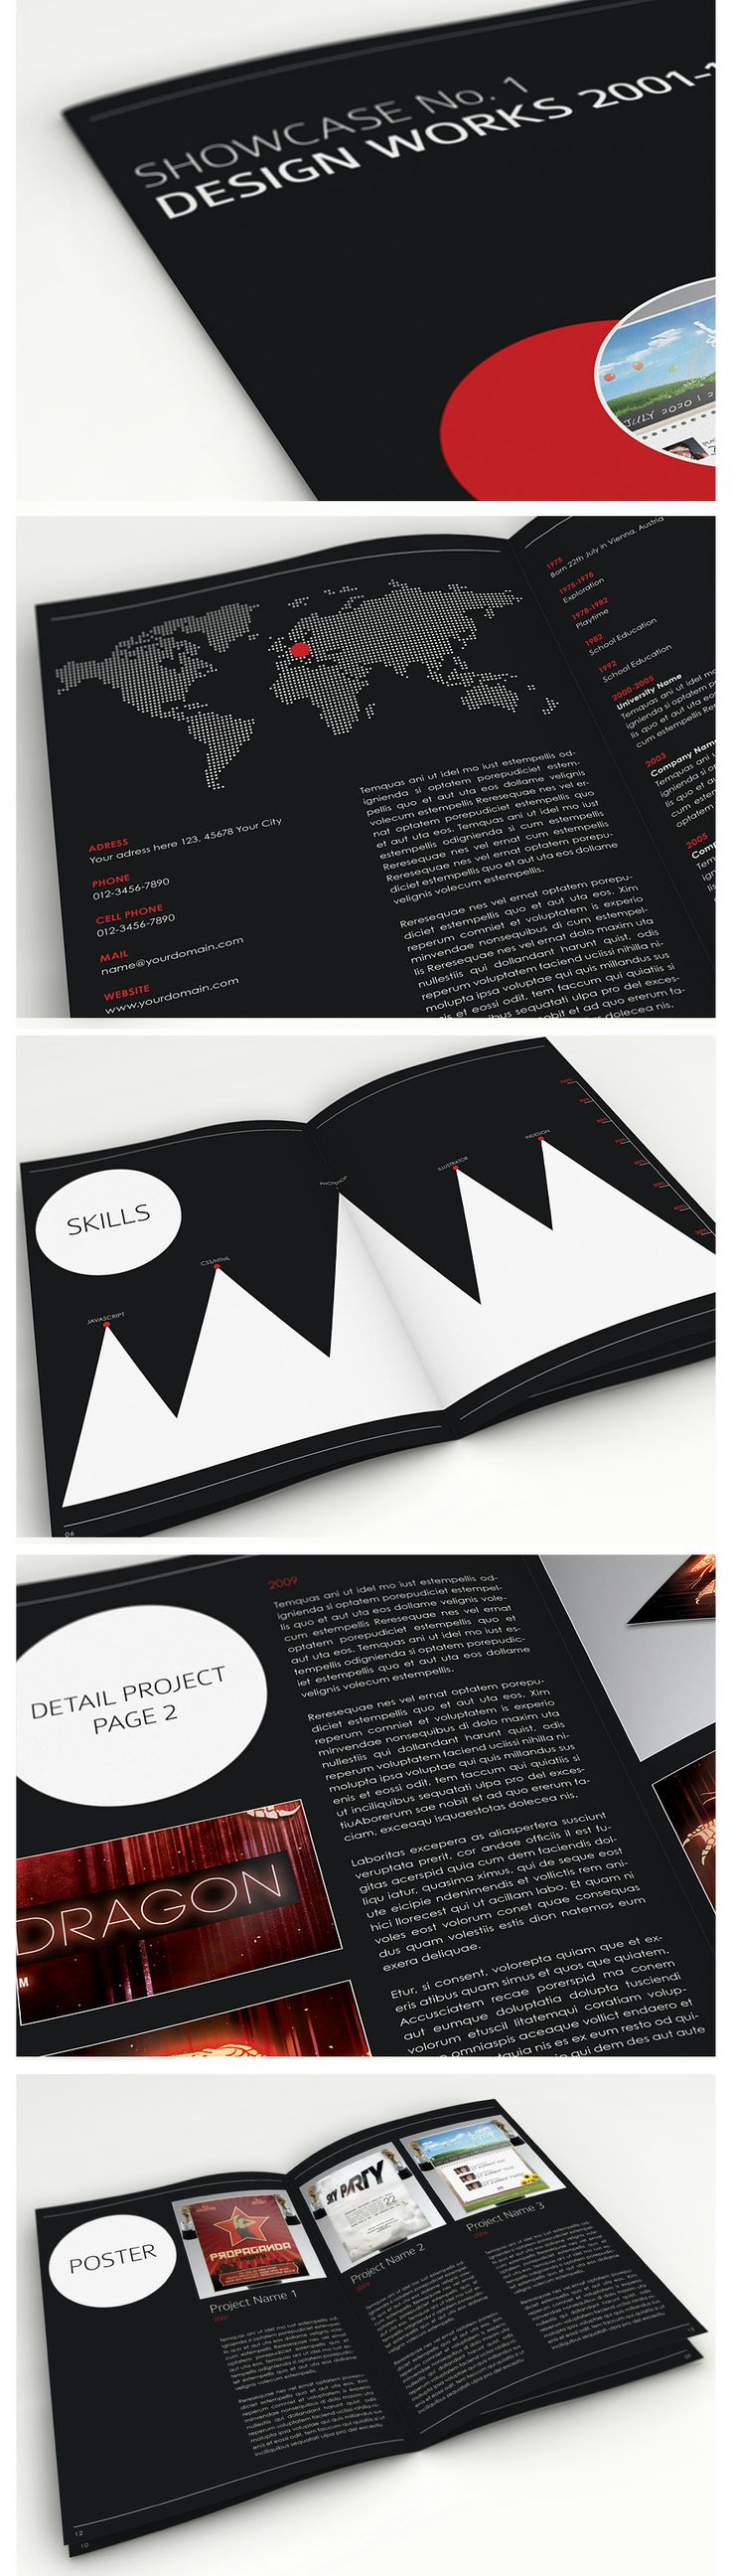 book brochure template - 17 best images about hotel brochure on pinterest behance